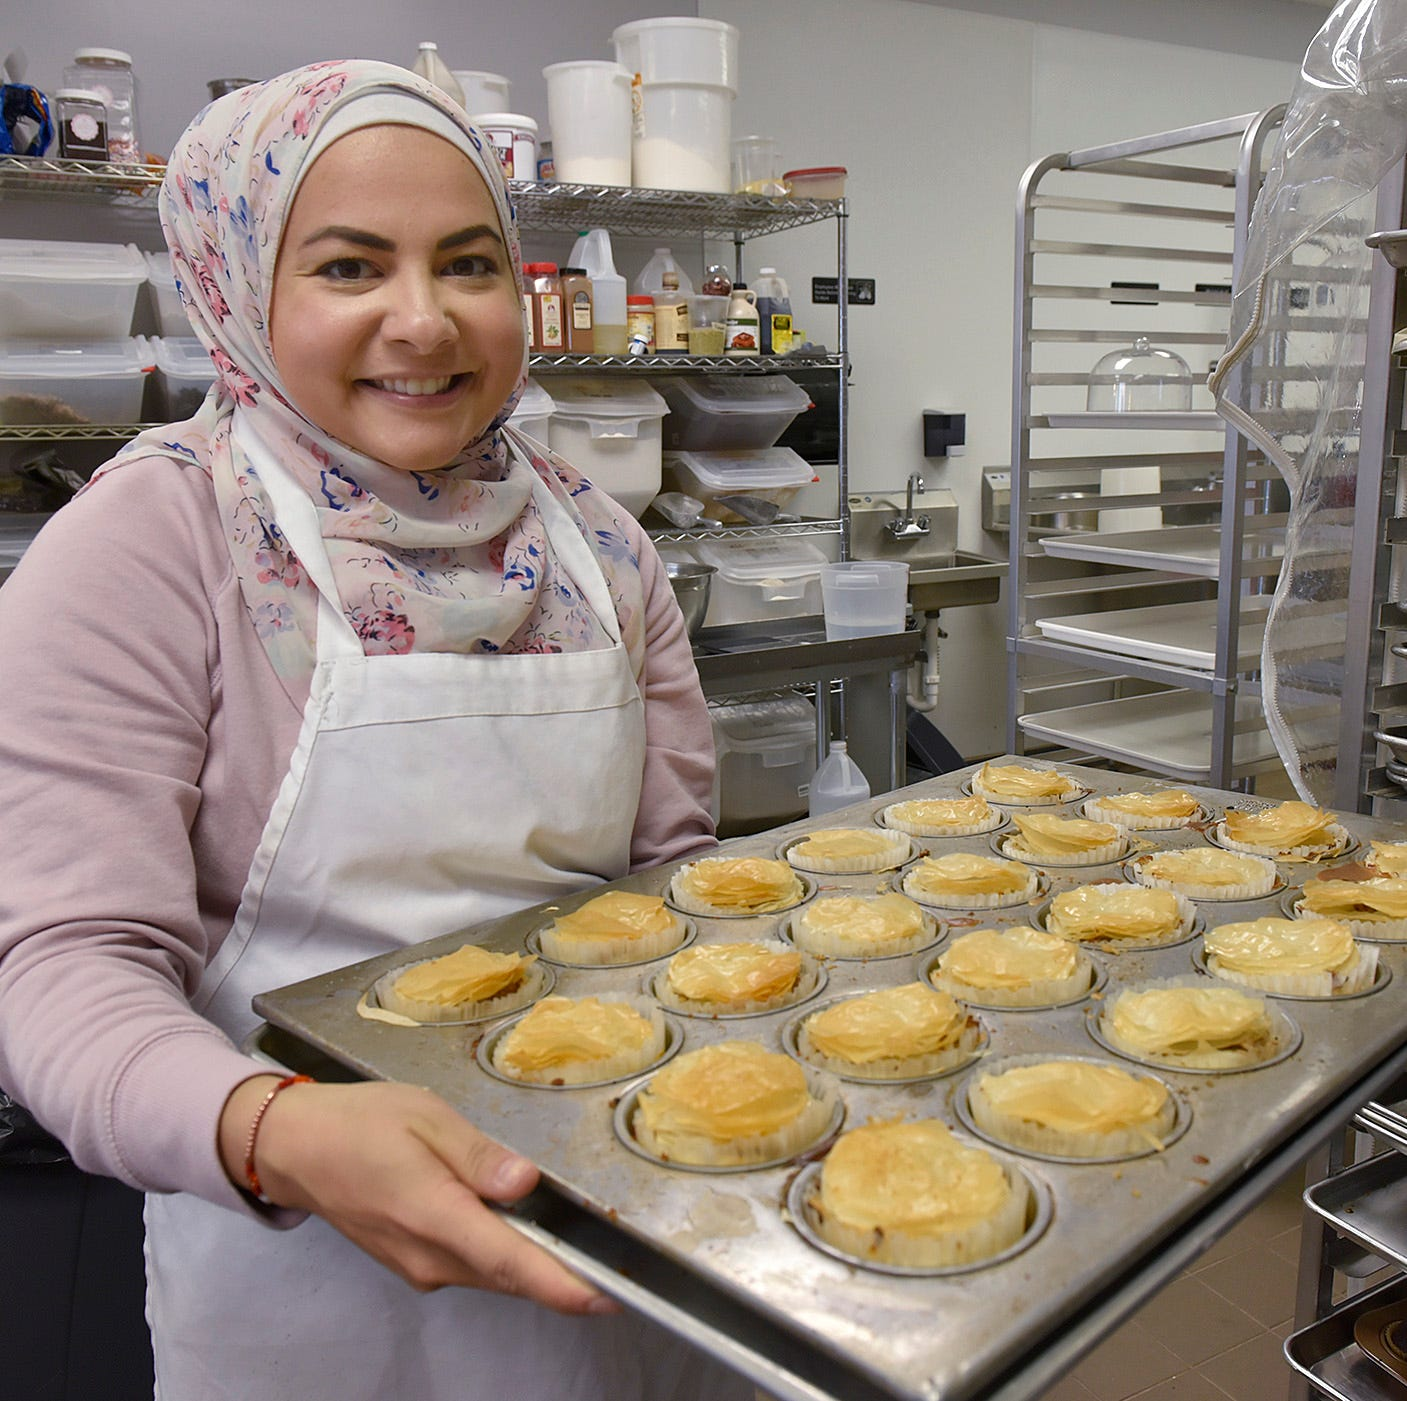 'MasterChef' contestant brings her talents to Butter Bear bakery in Livonia